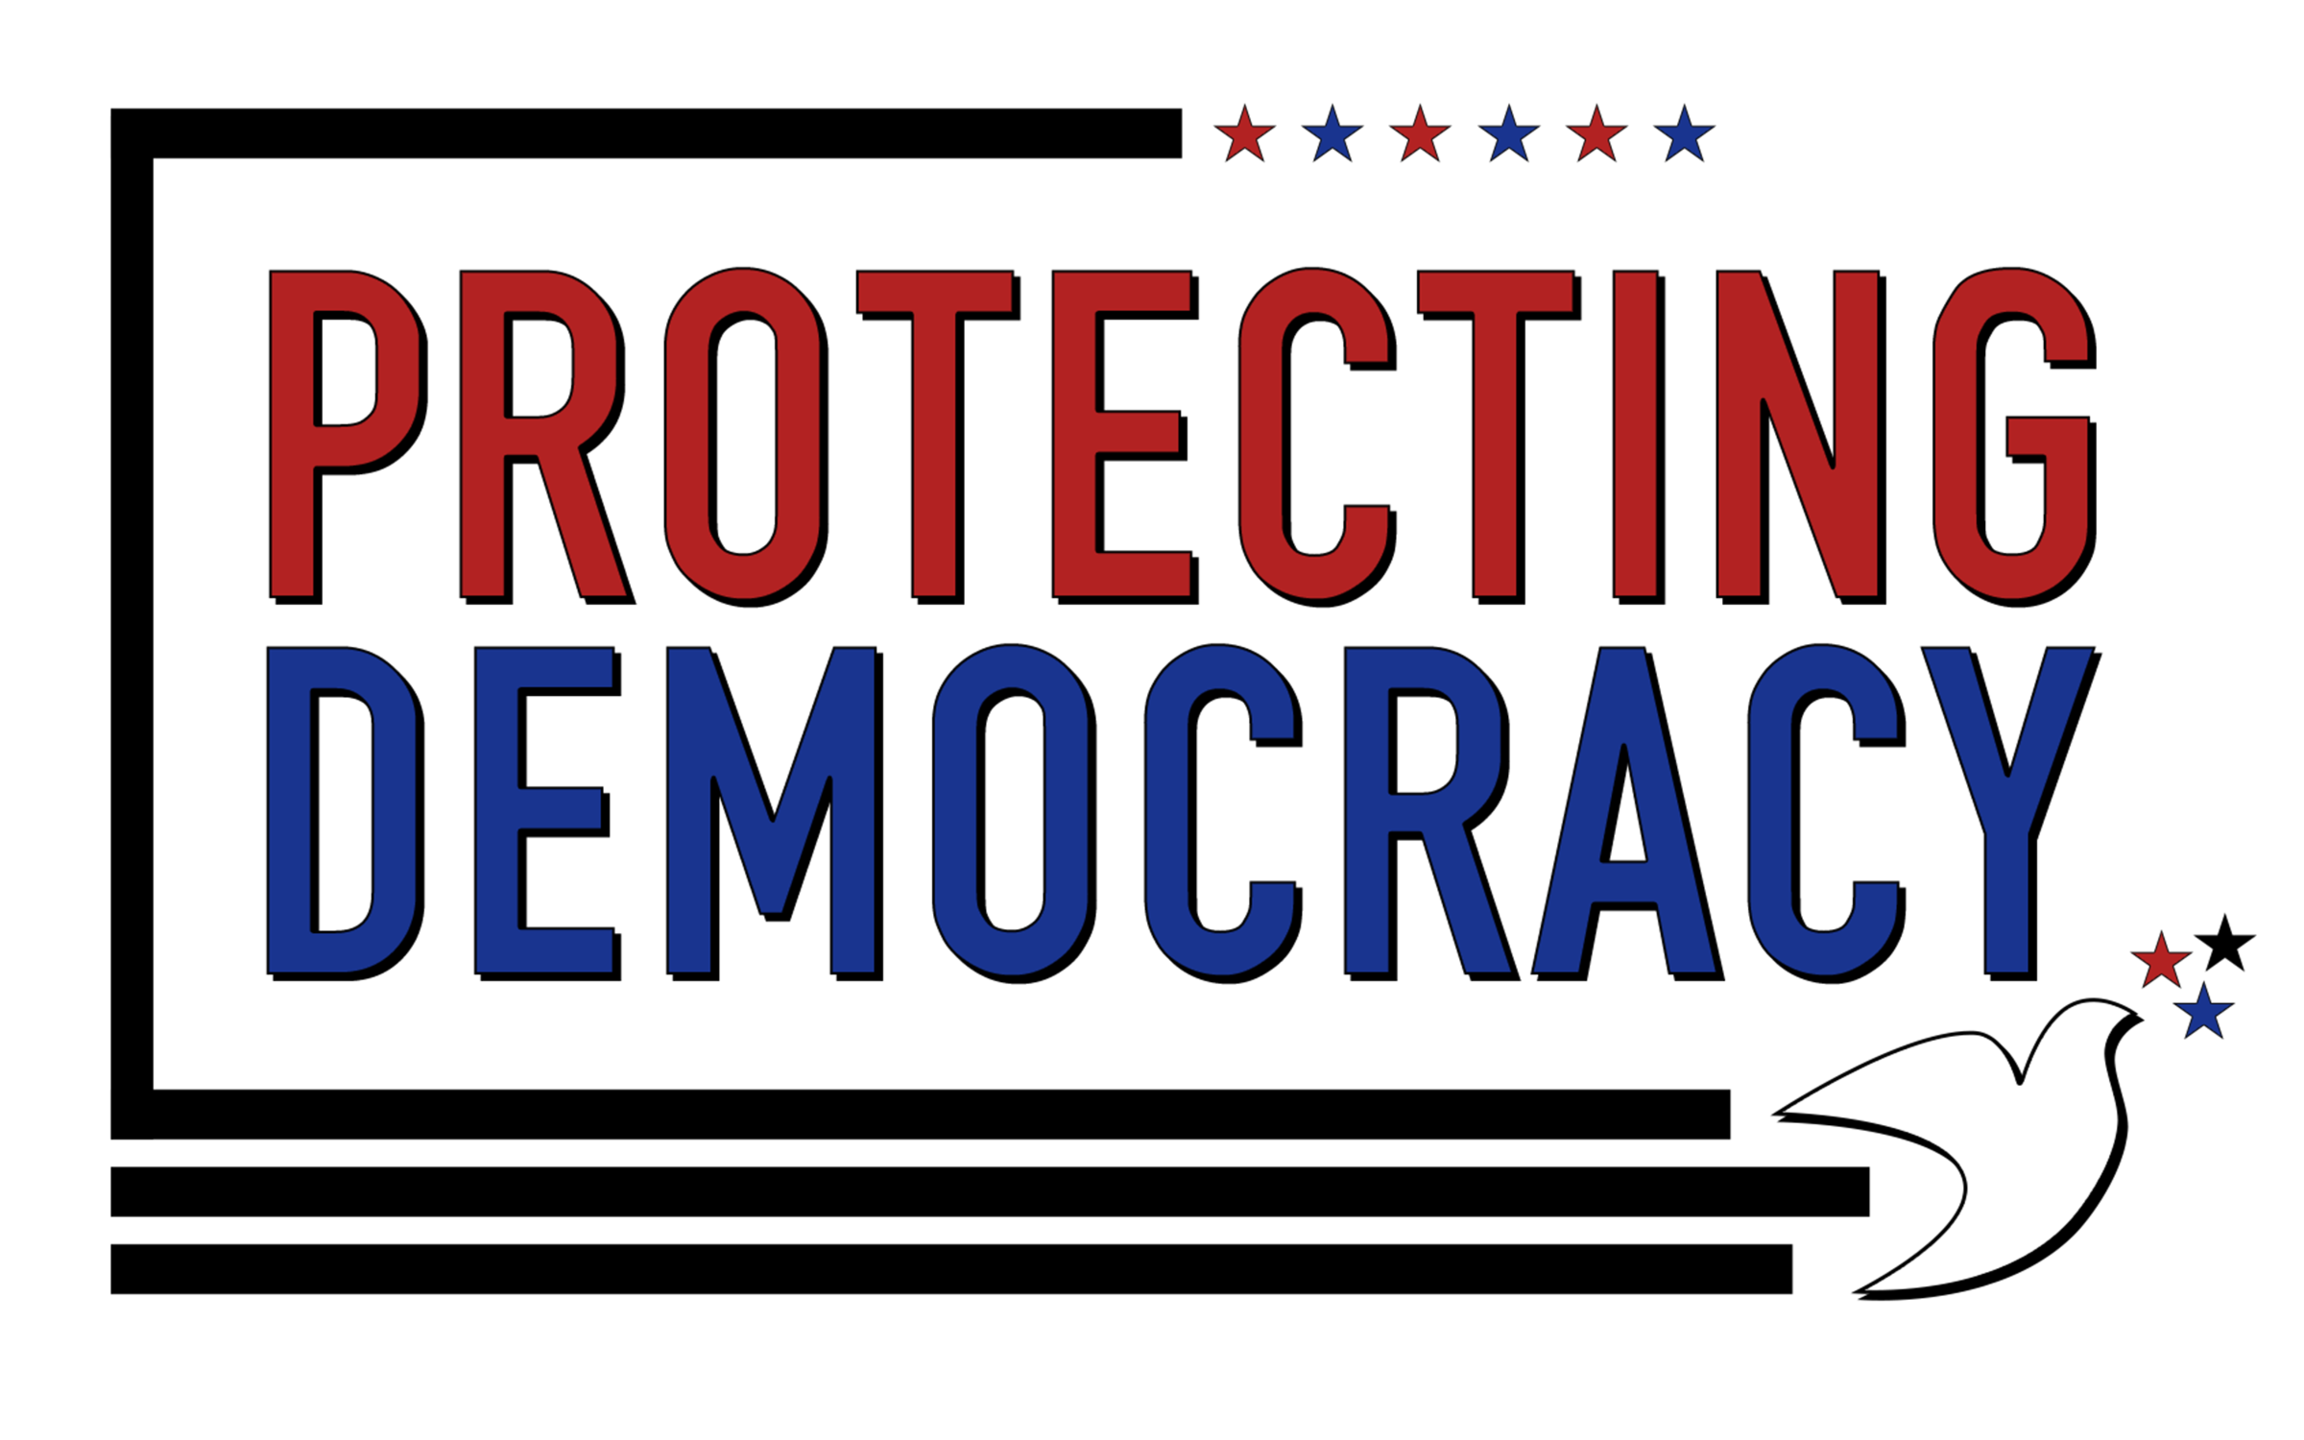 Protecting Democracy with dove and stars